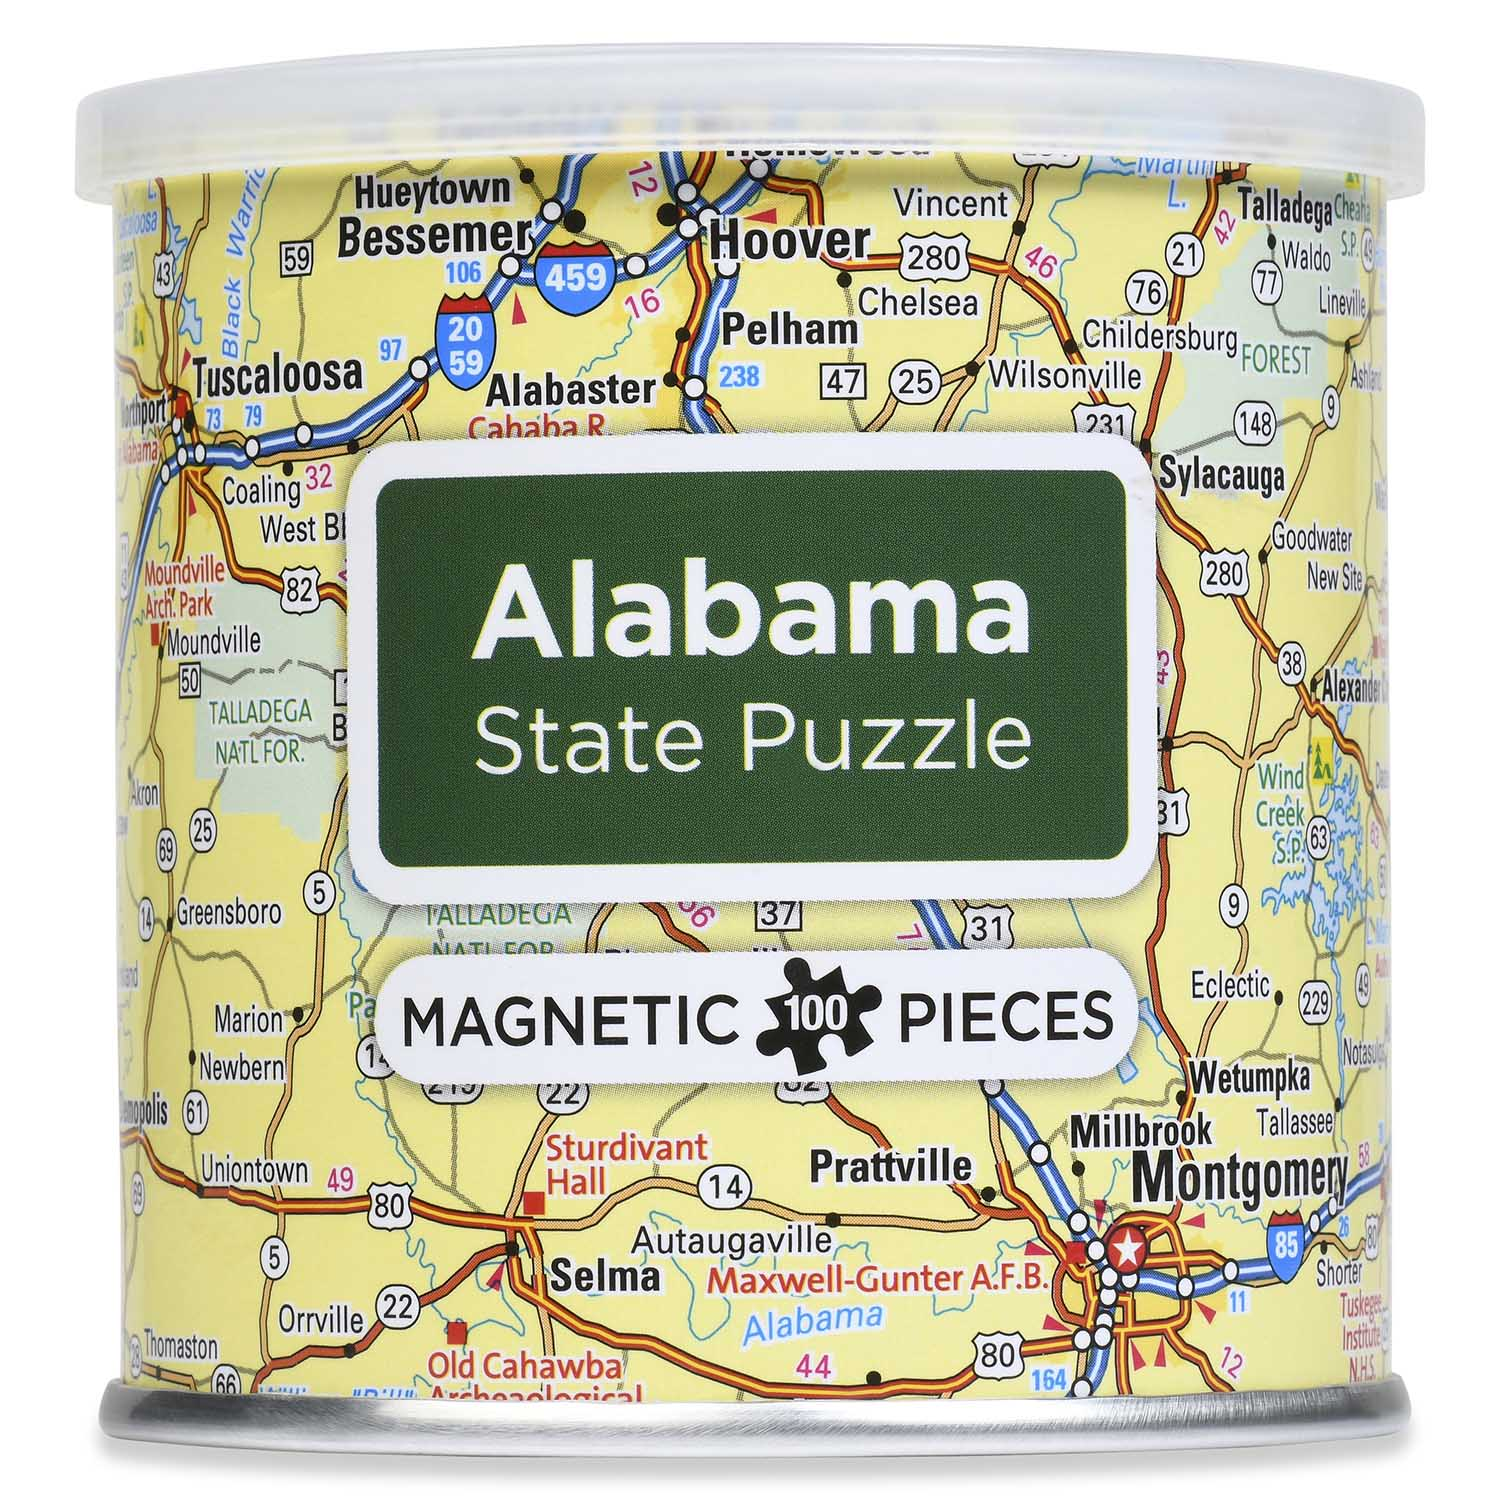 City Magnetic Puzzle Alabama Cities Jigsaw Puzzle